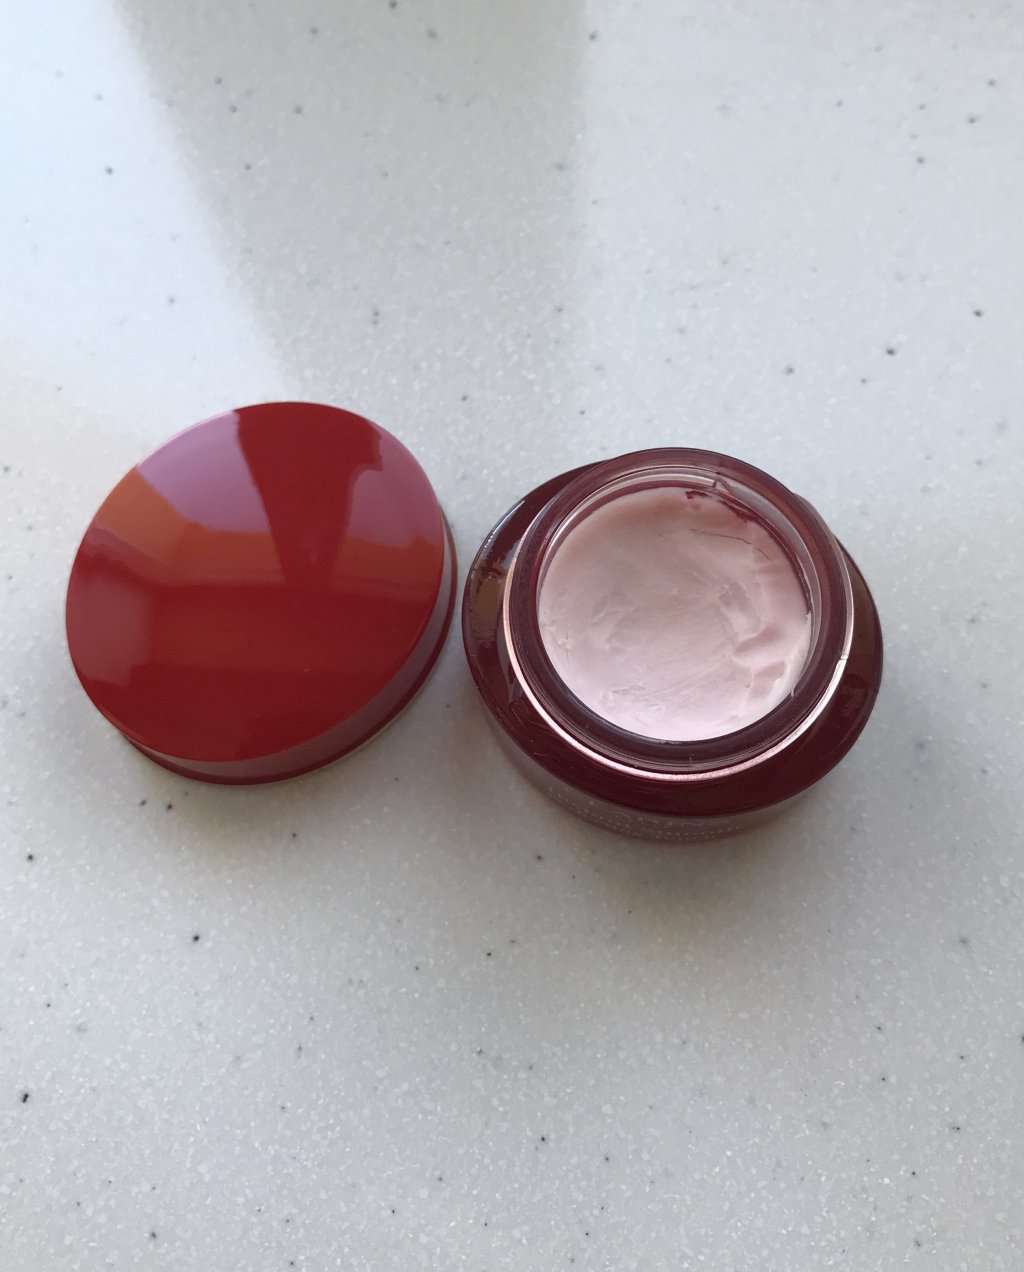 Clarins Lisse Minute Instant Smooth Perfecting Touch - Разглаживающая и улучшающая цвет лица база под макияж